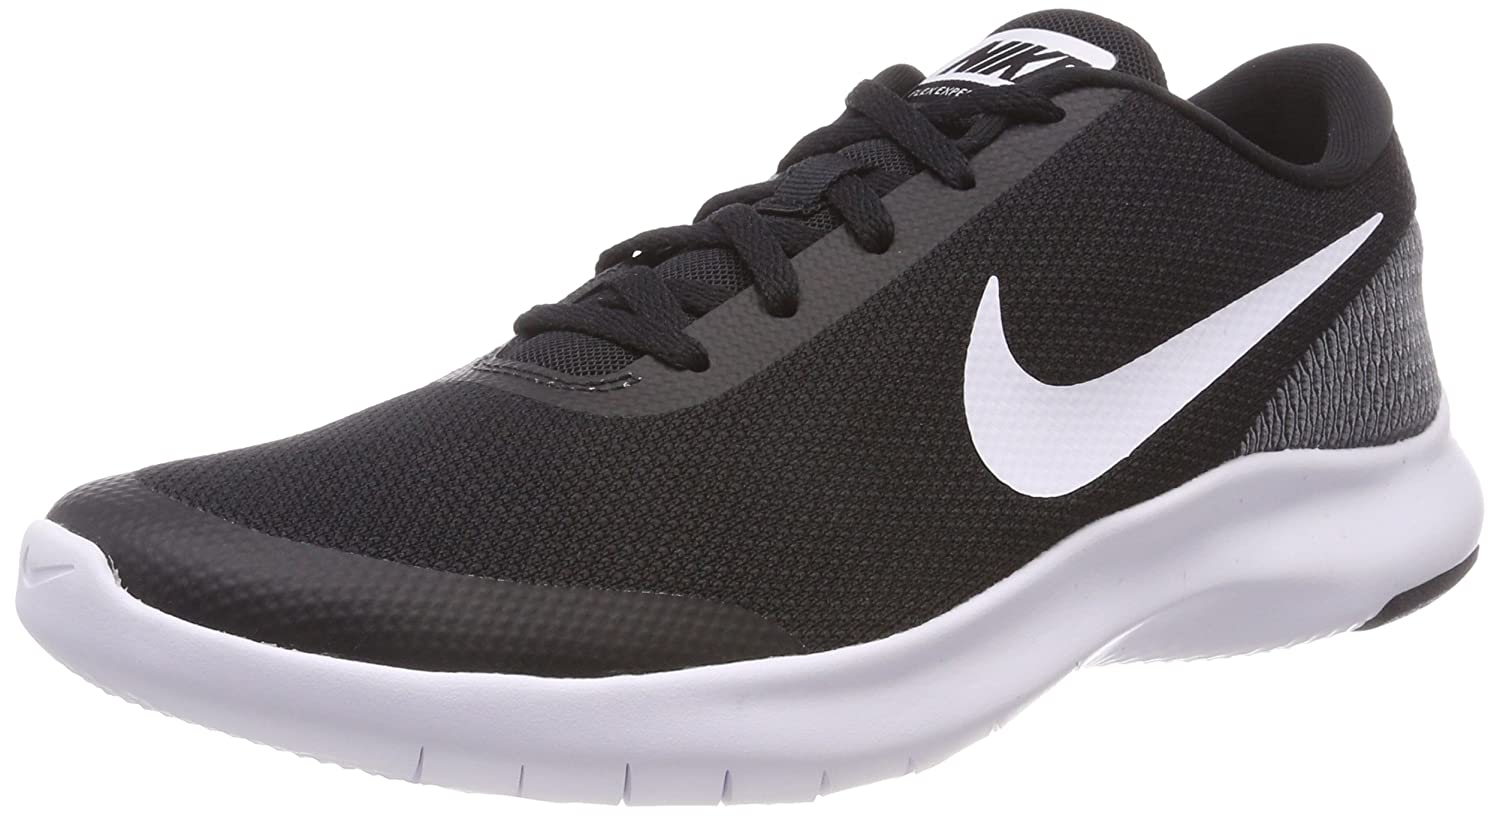 NIKE Women's Flex Experience 7 Running Shoe B0725GYMHF 12 B(M) US|Black/White-white